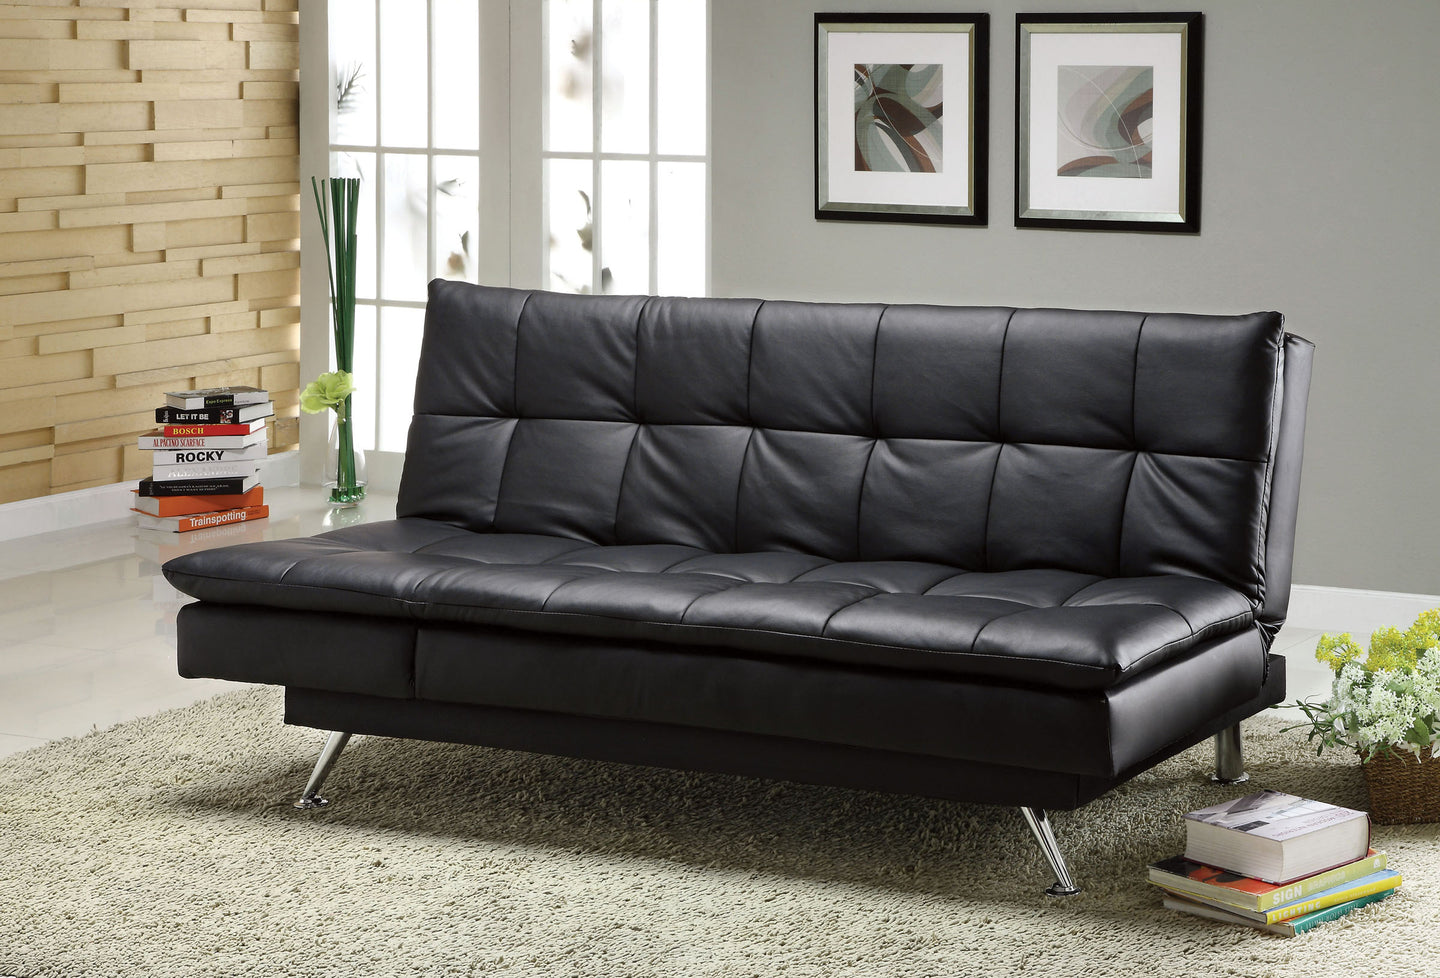 Hasty CM2750 Contemporary Black Leatherette Futon Sofa Bed